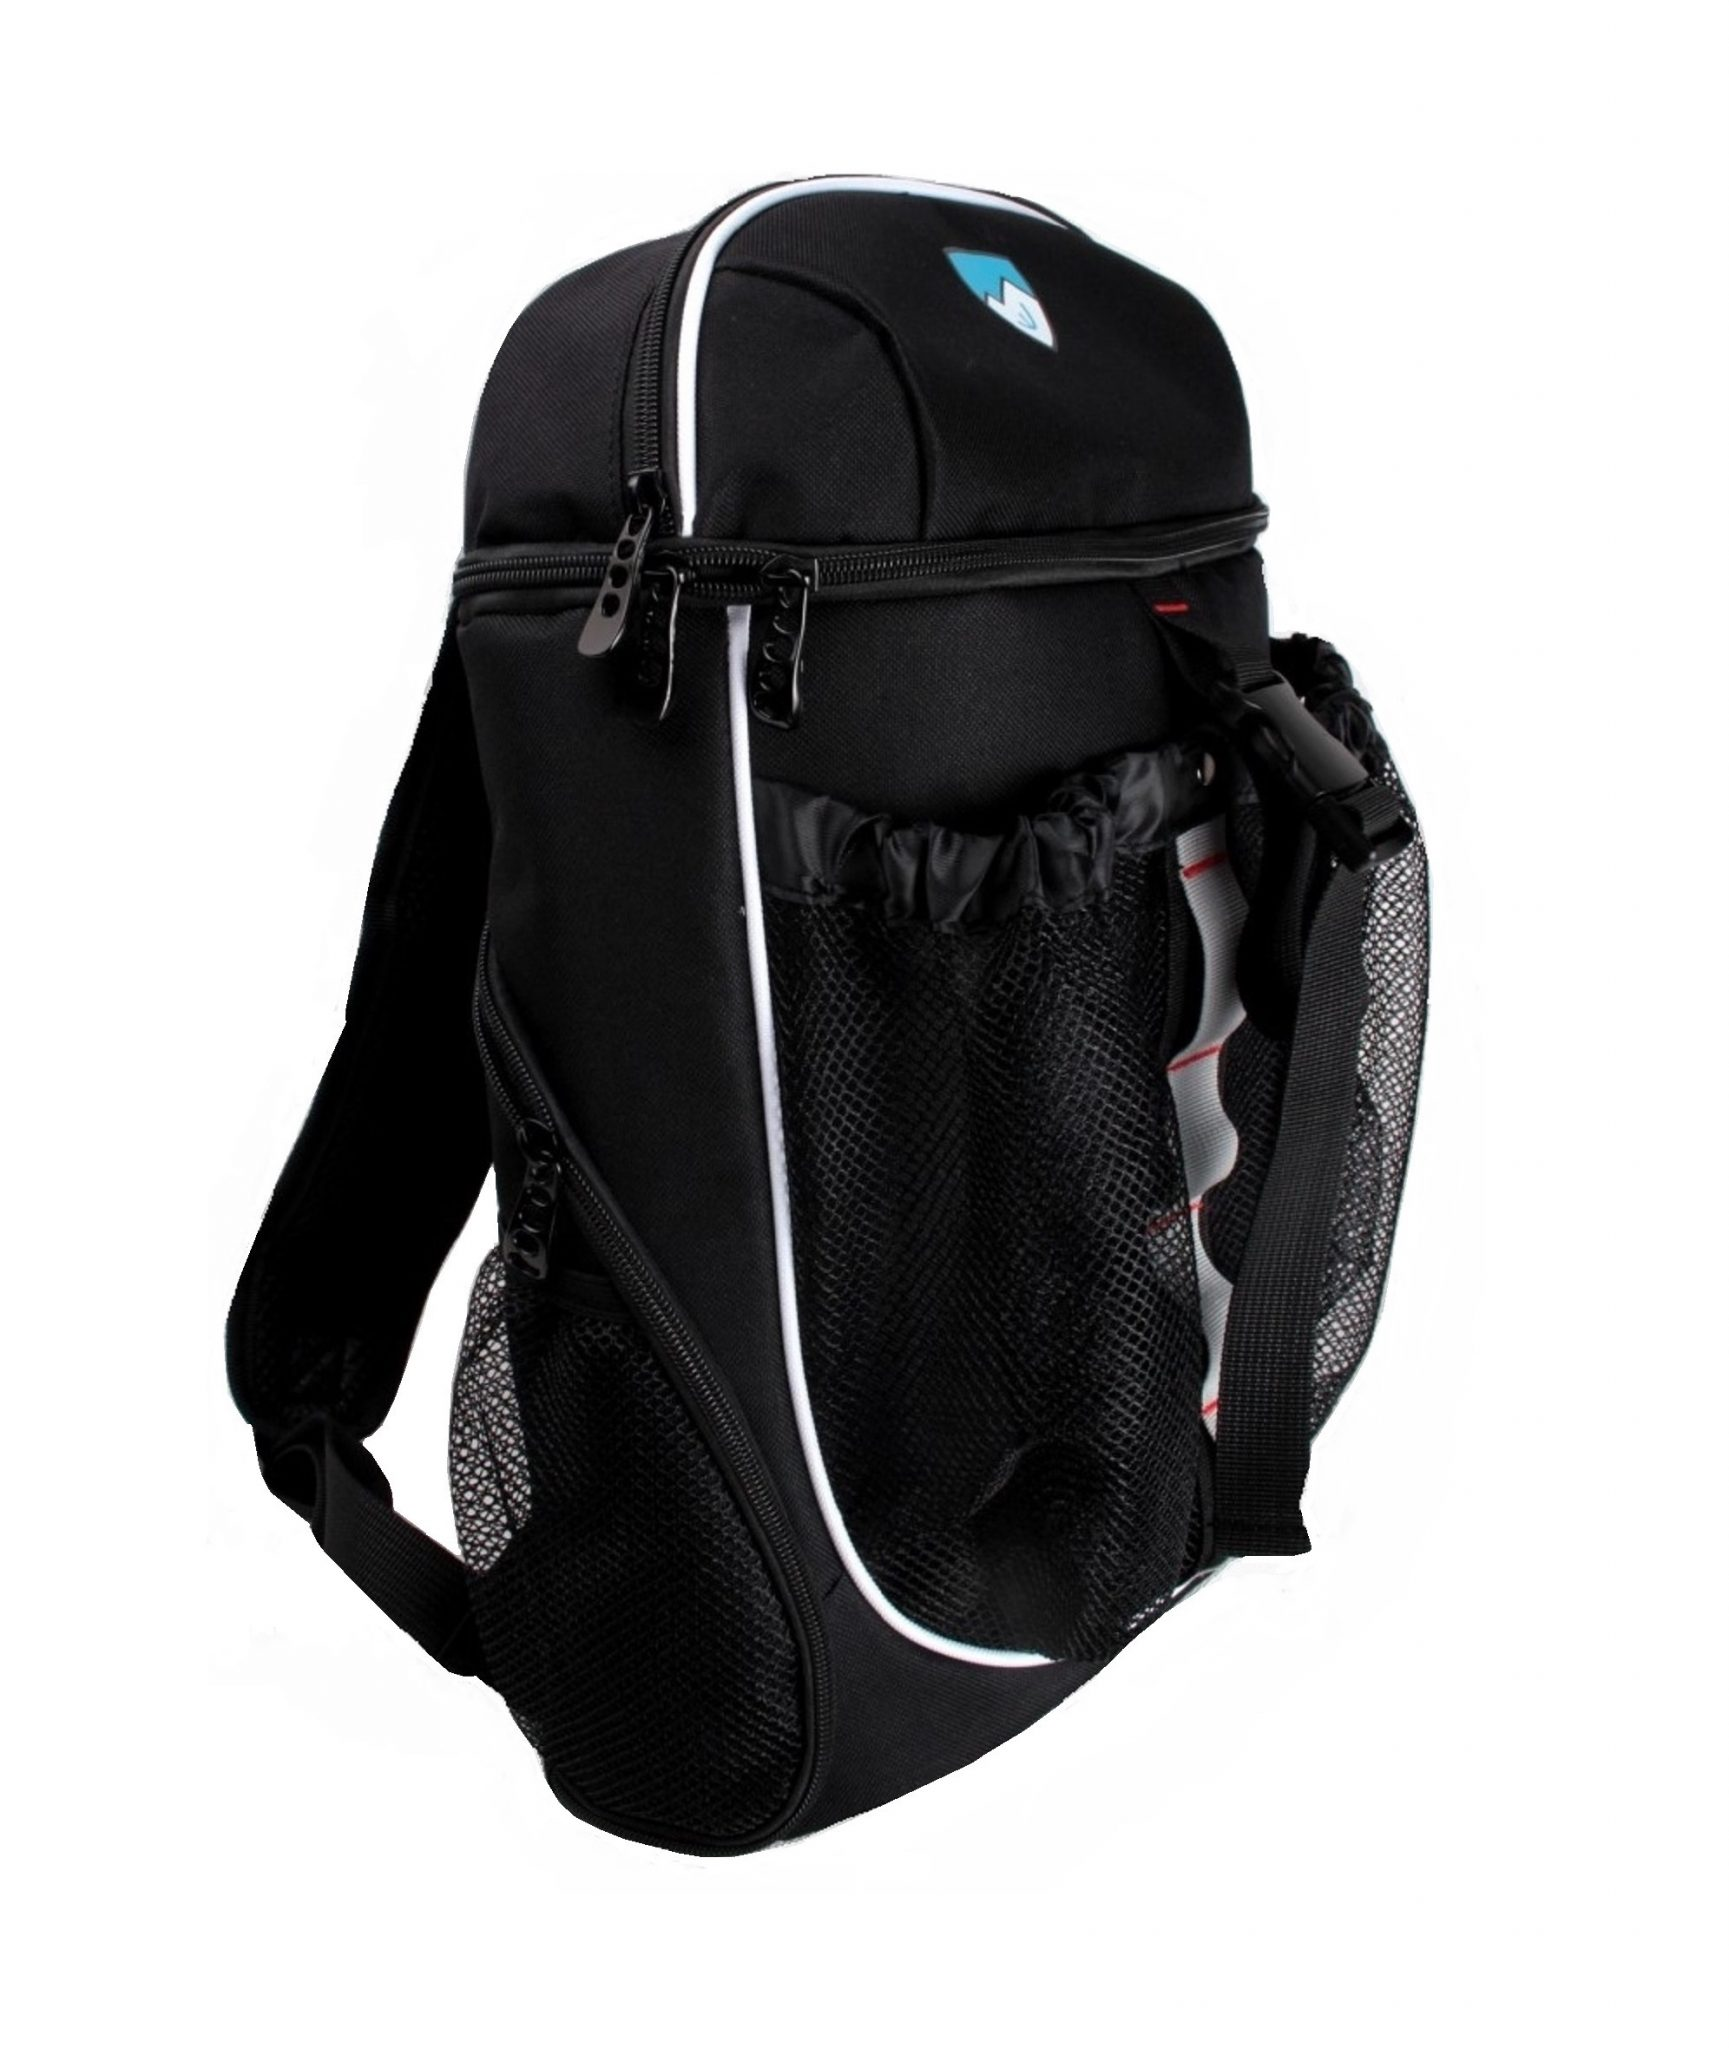 Hard Work Sports Basketball Backpack